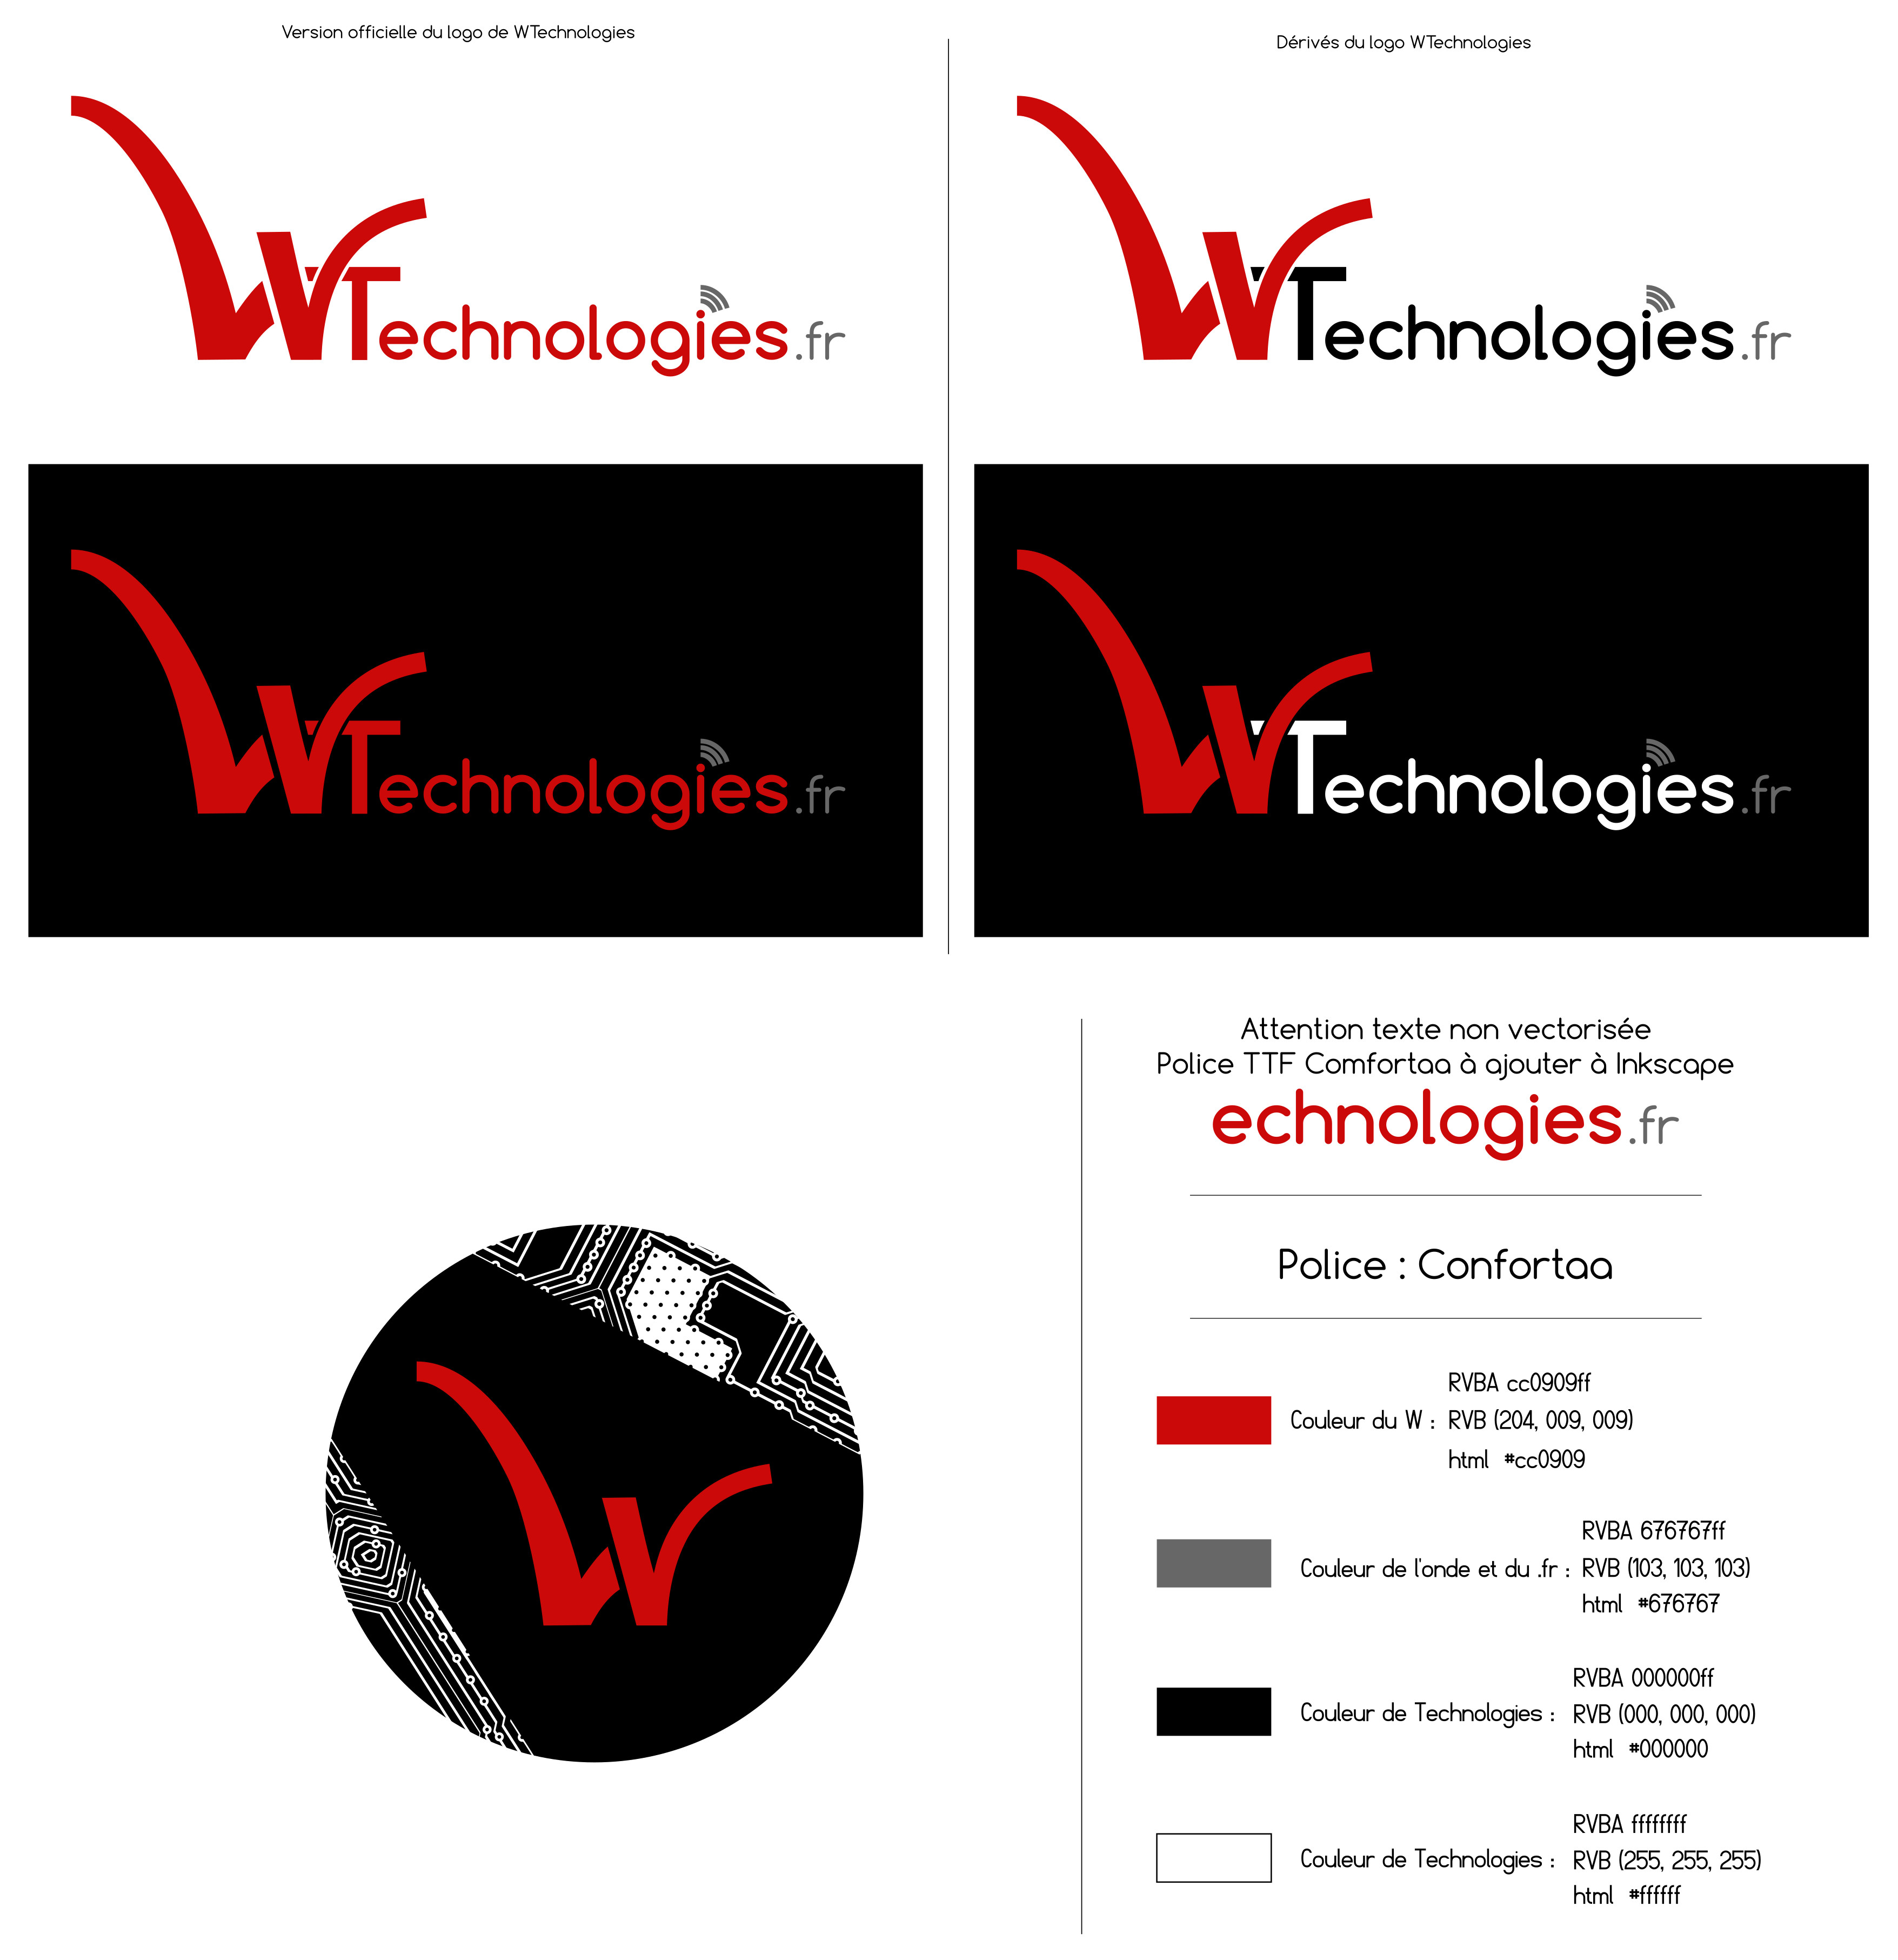 images/logos/wtechnologies